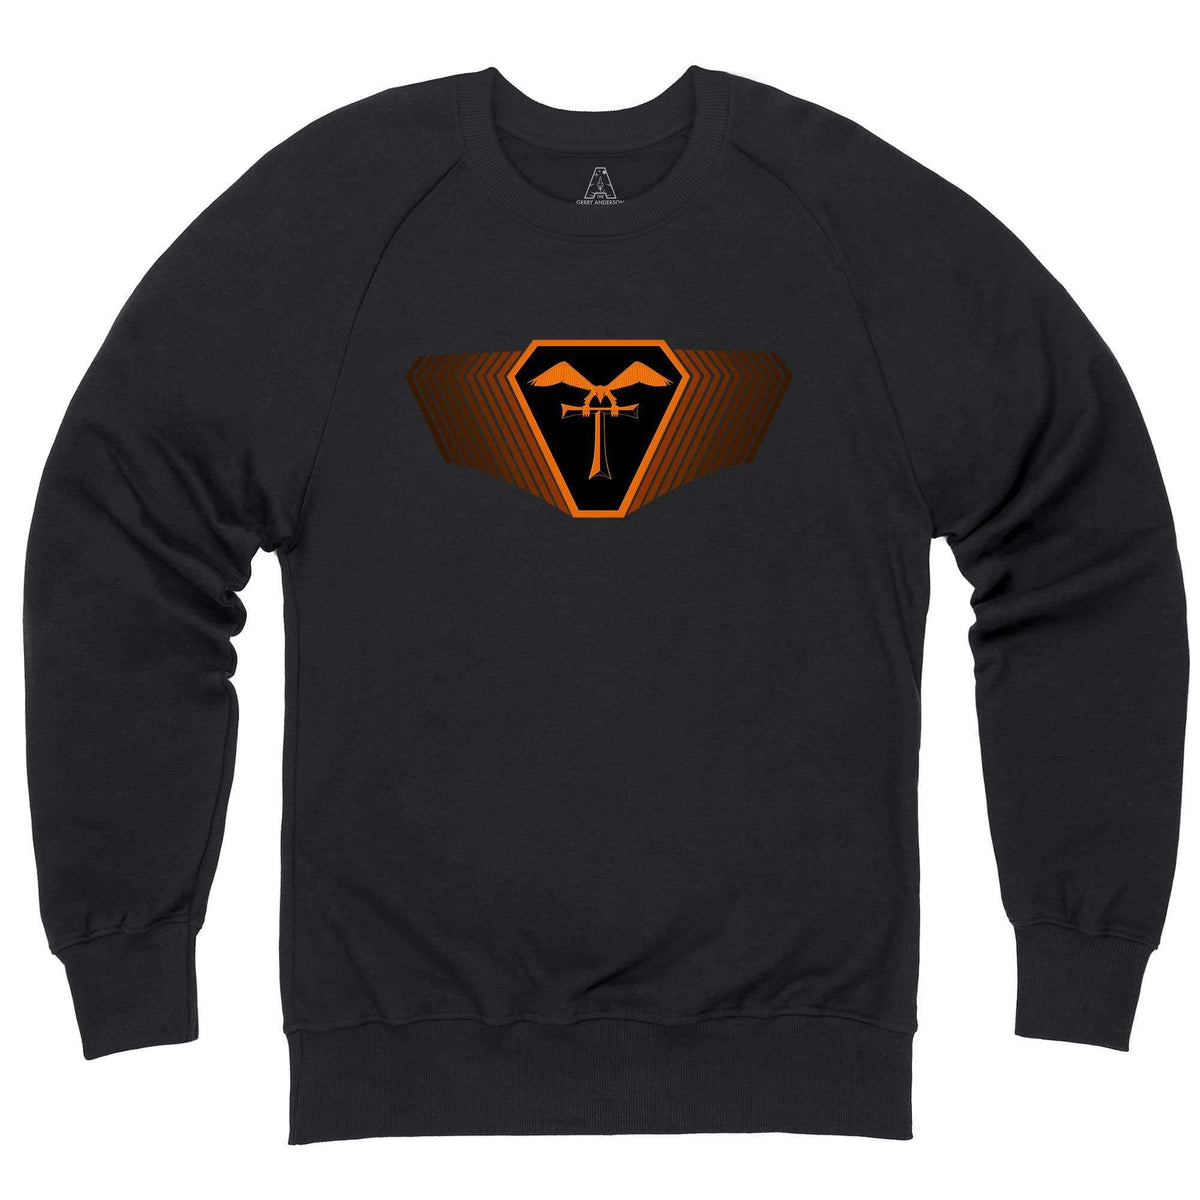 Terrahawks Orange Emblem Sweatshirt [Official & Exclusive] - The Gerry Anderson Store